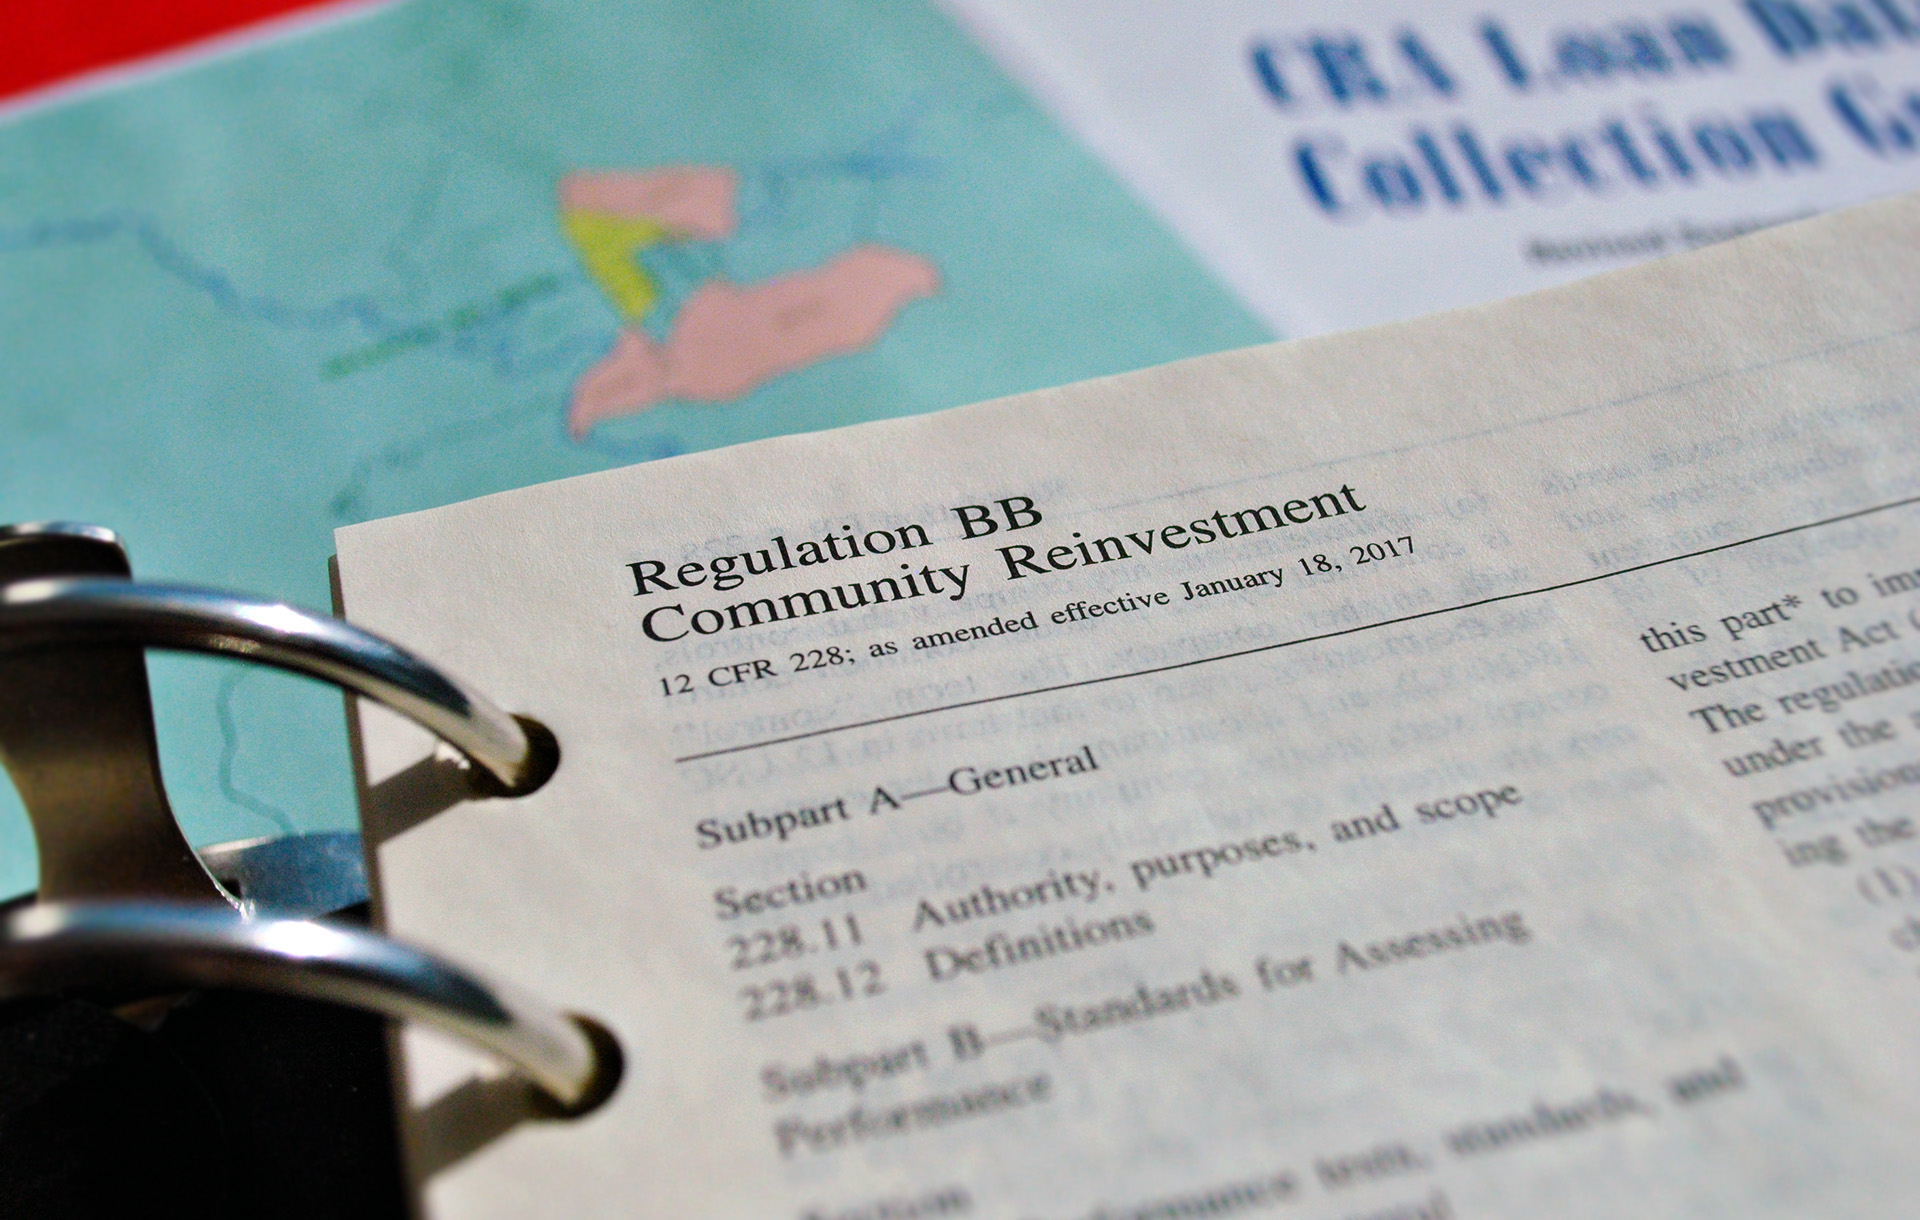 CRA Regulations Binder, detail